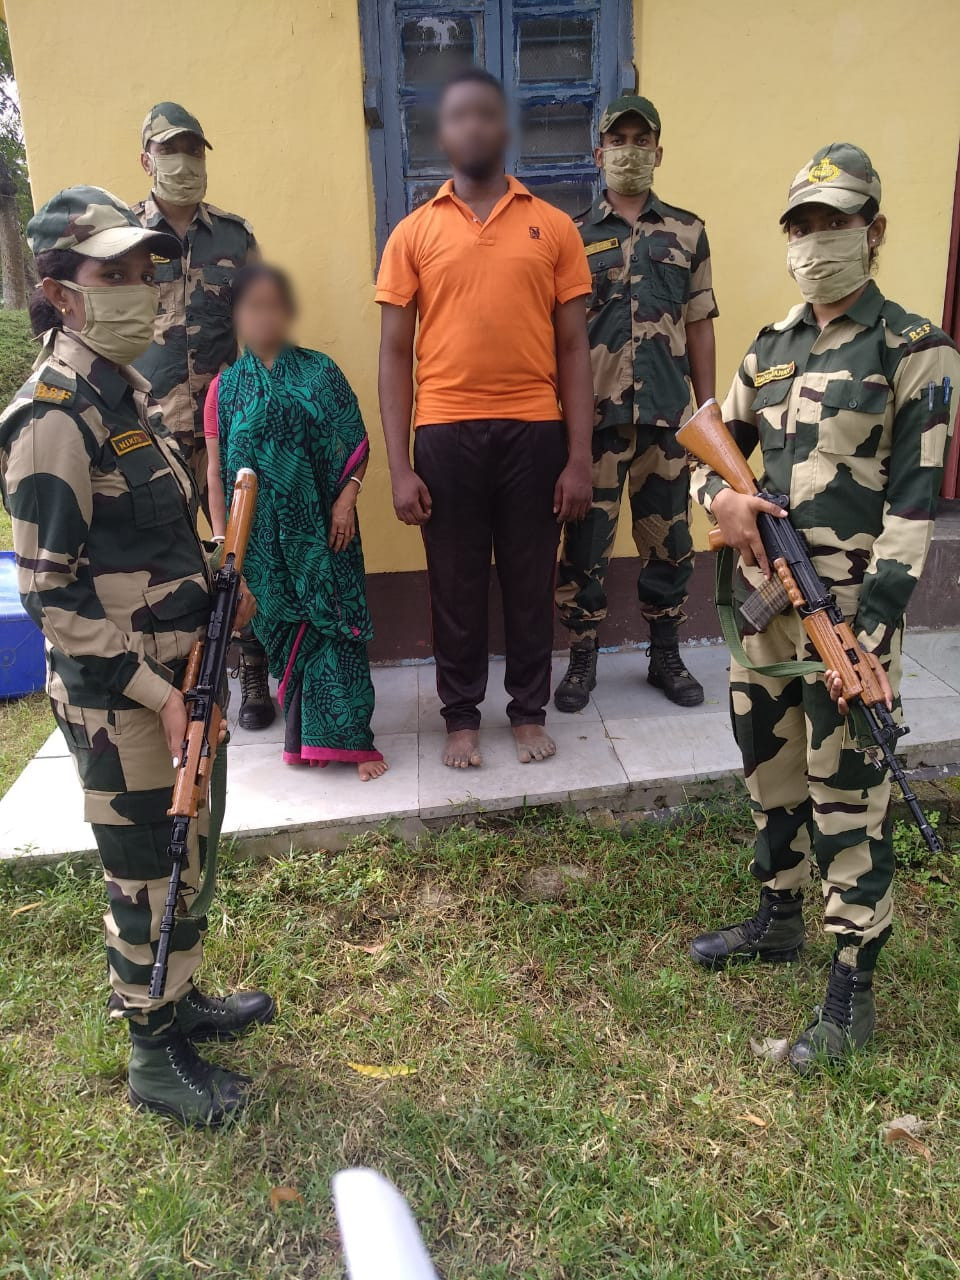 Nigerian national arrested while trying to illegally enter Bangladesh from India